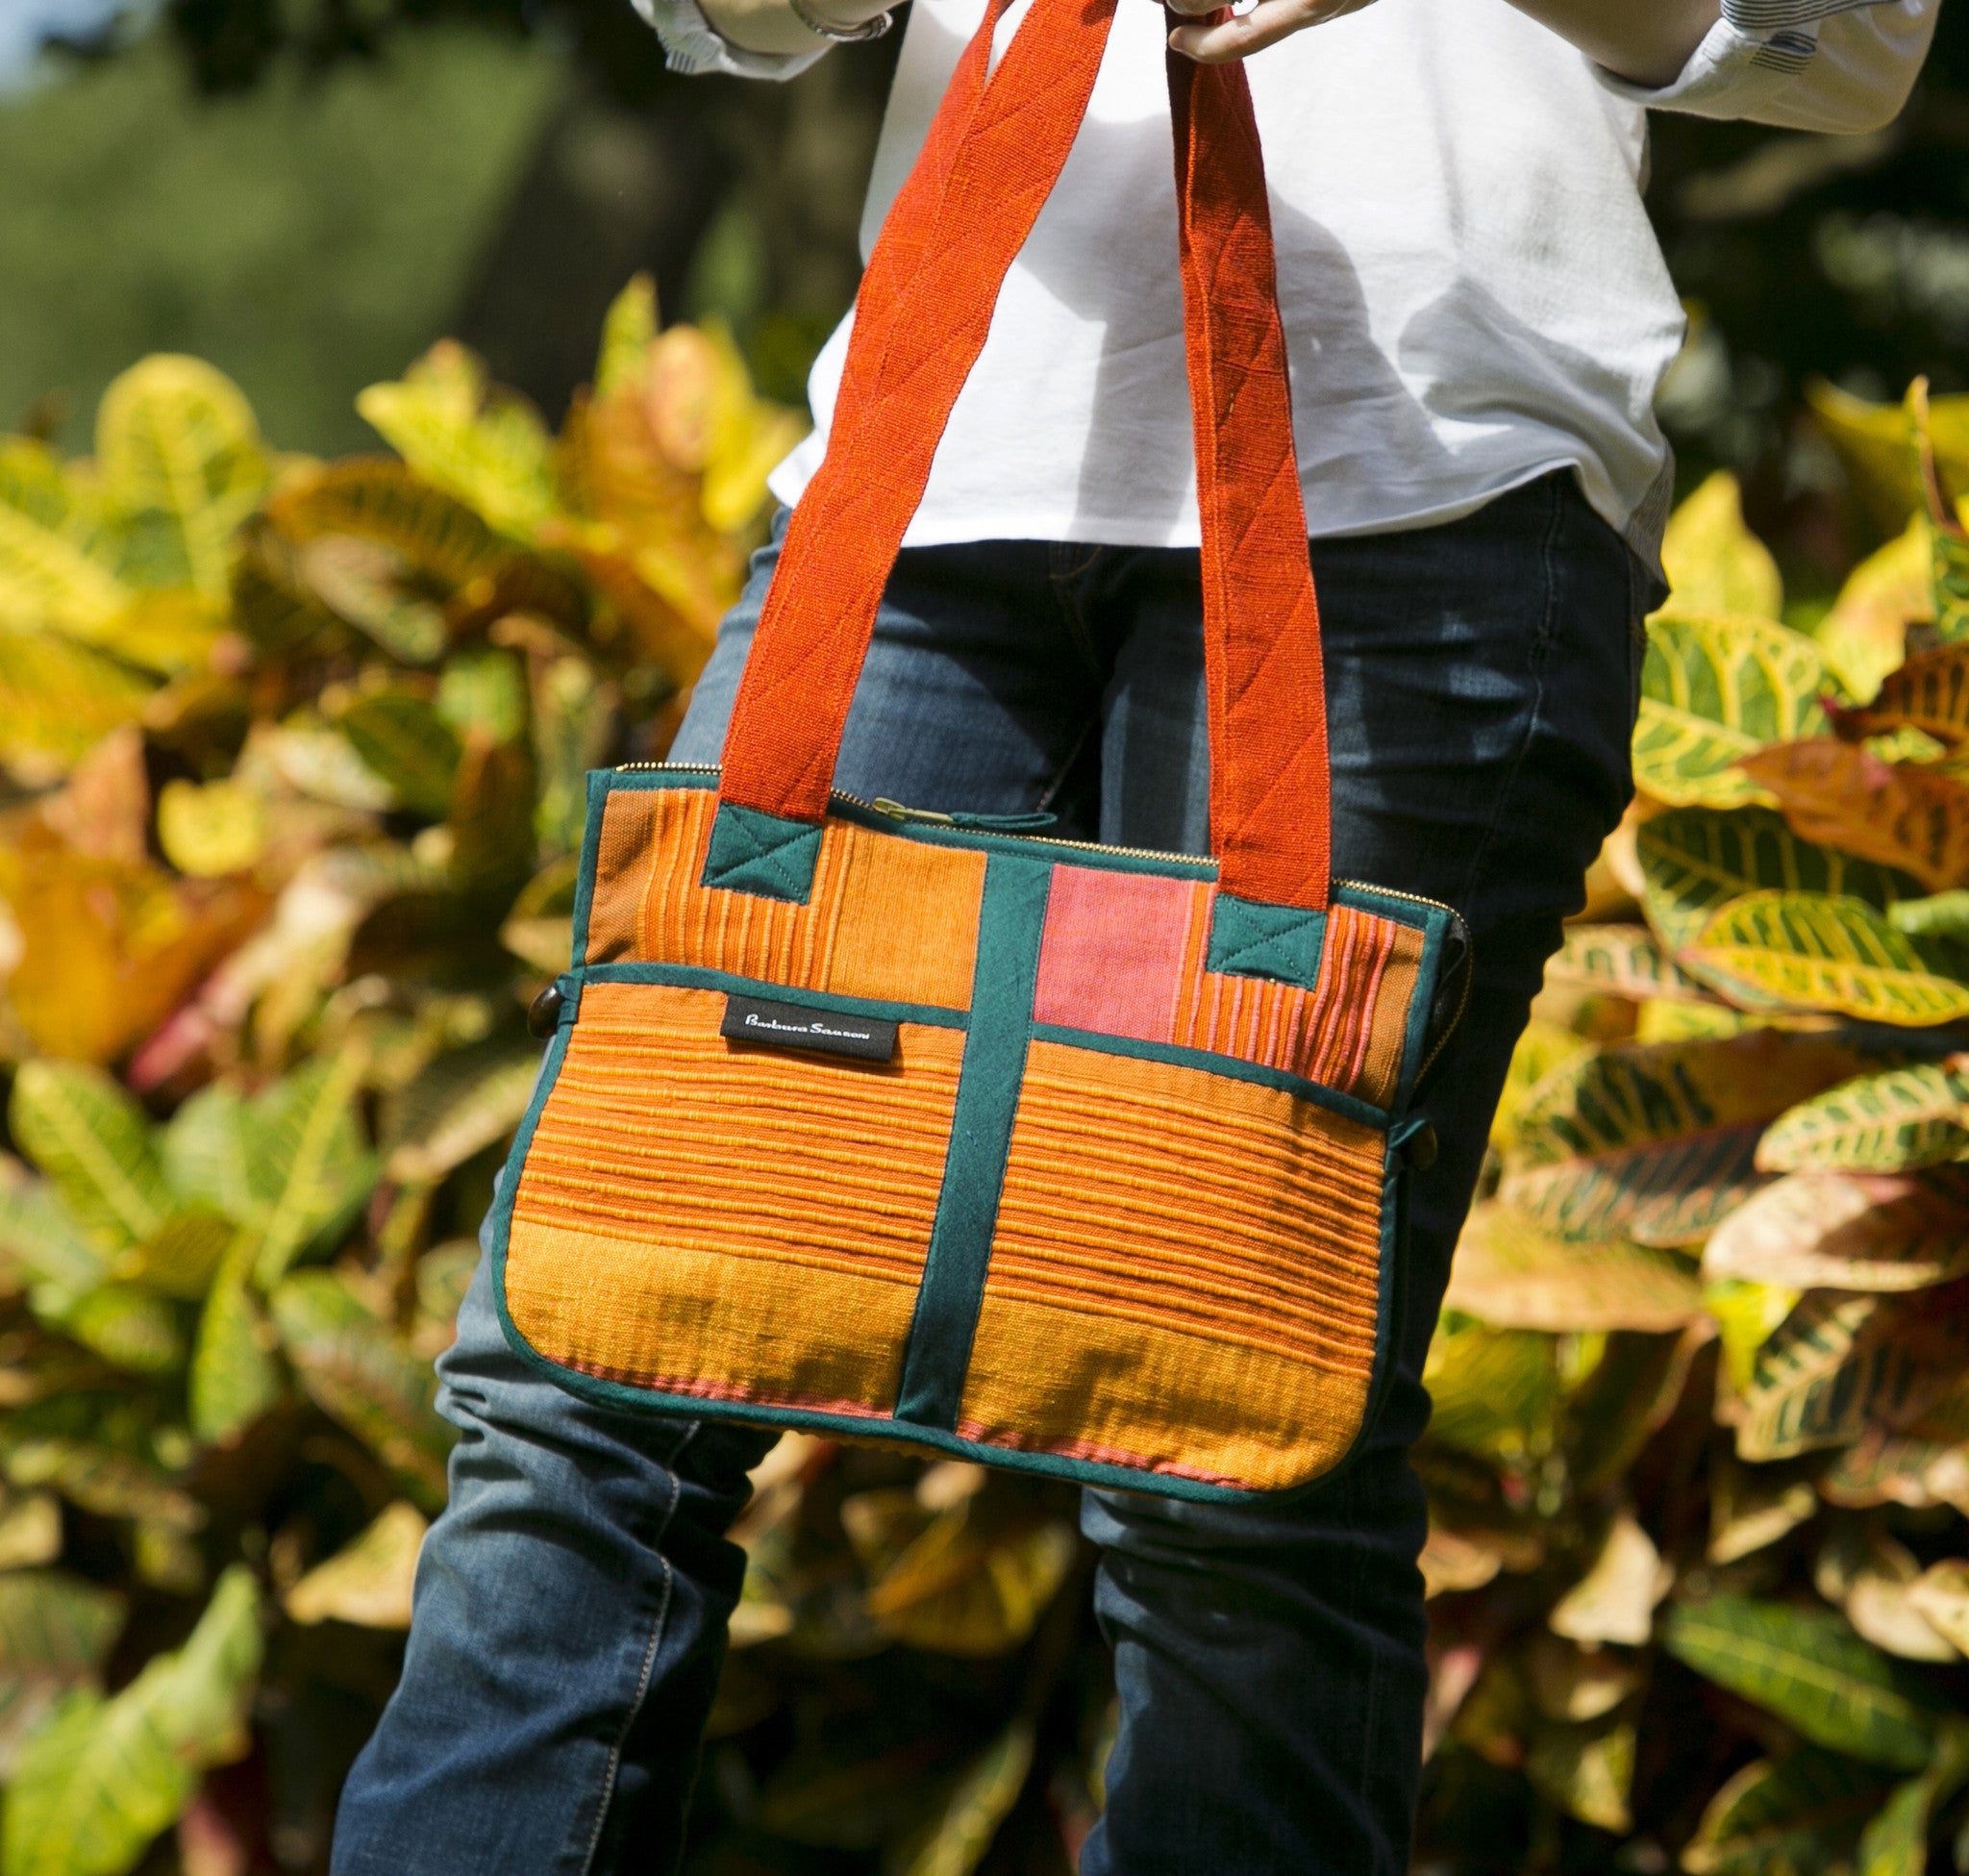 Barefoot Handwoven Expandable Shoulder Bag – spacious and stylish! (sample fabric shown)